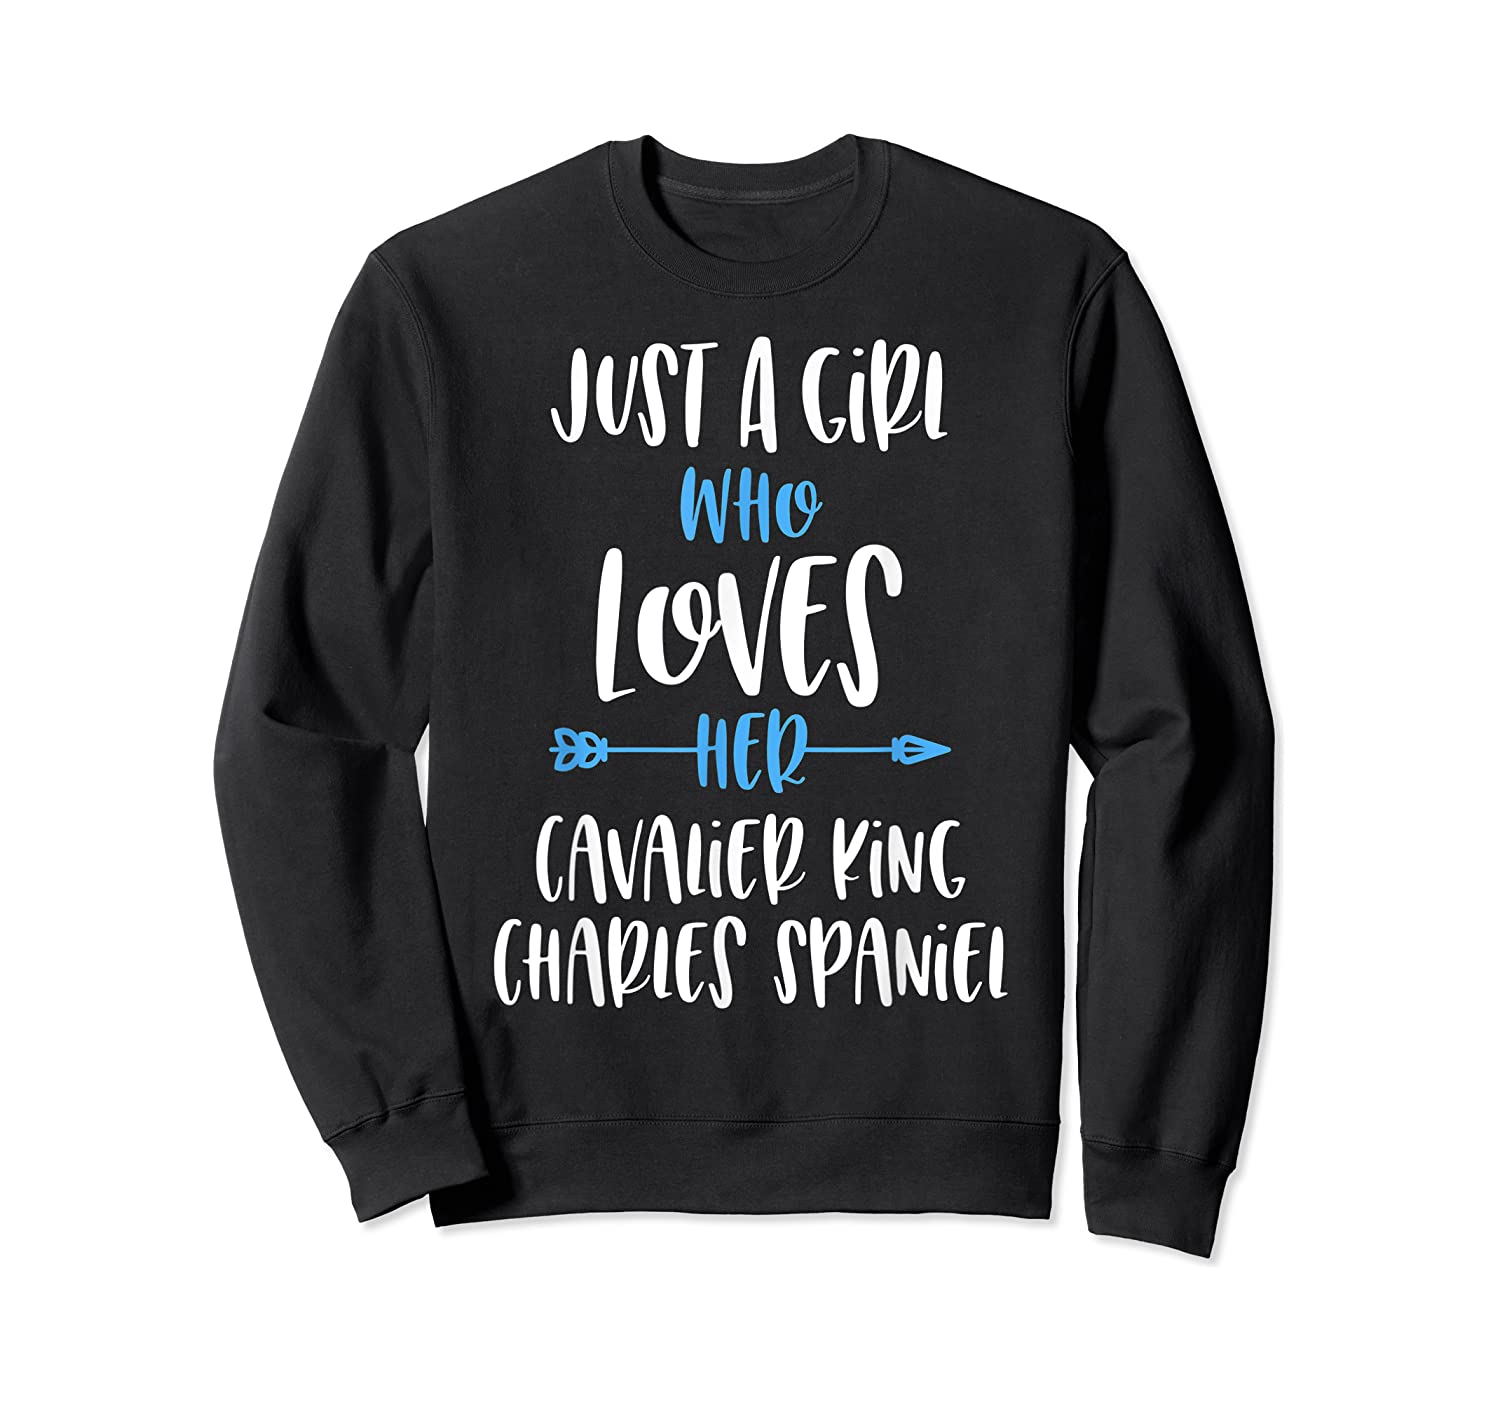 Just A Girl Who Loves Her Cavalier King Charles Spaniel Shirts Crewneck Sweater